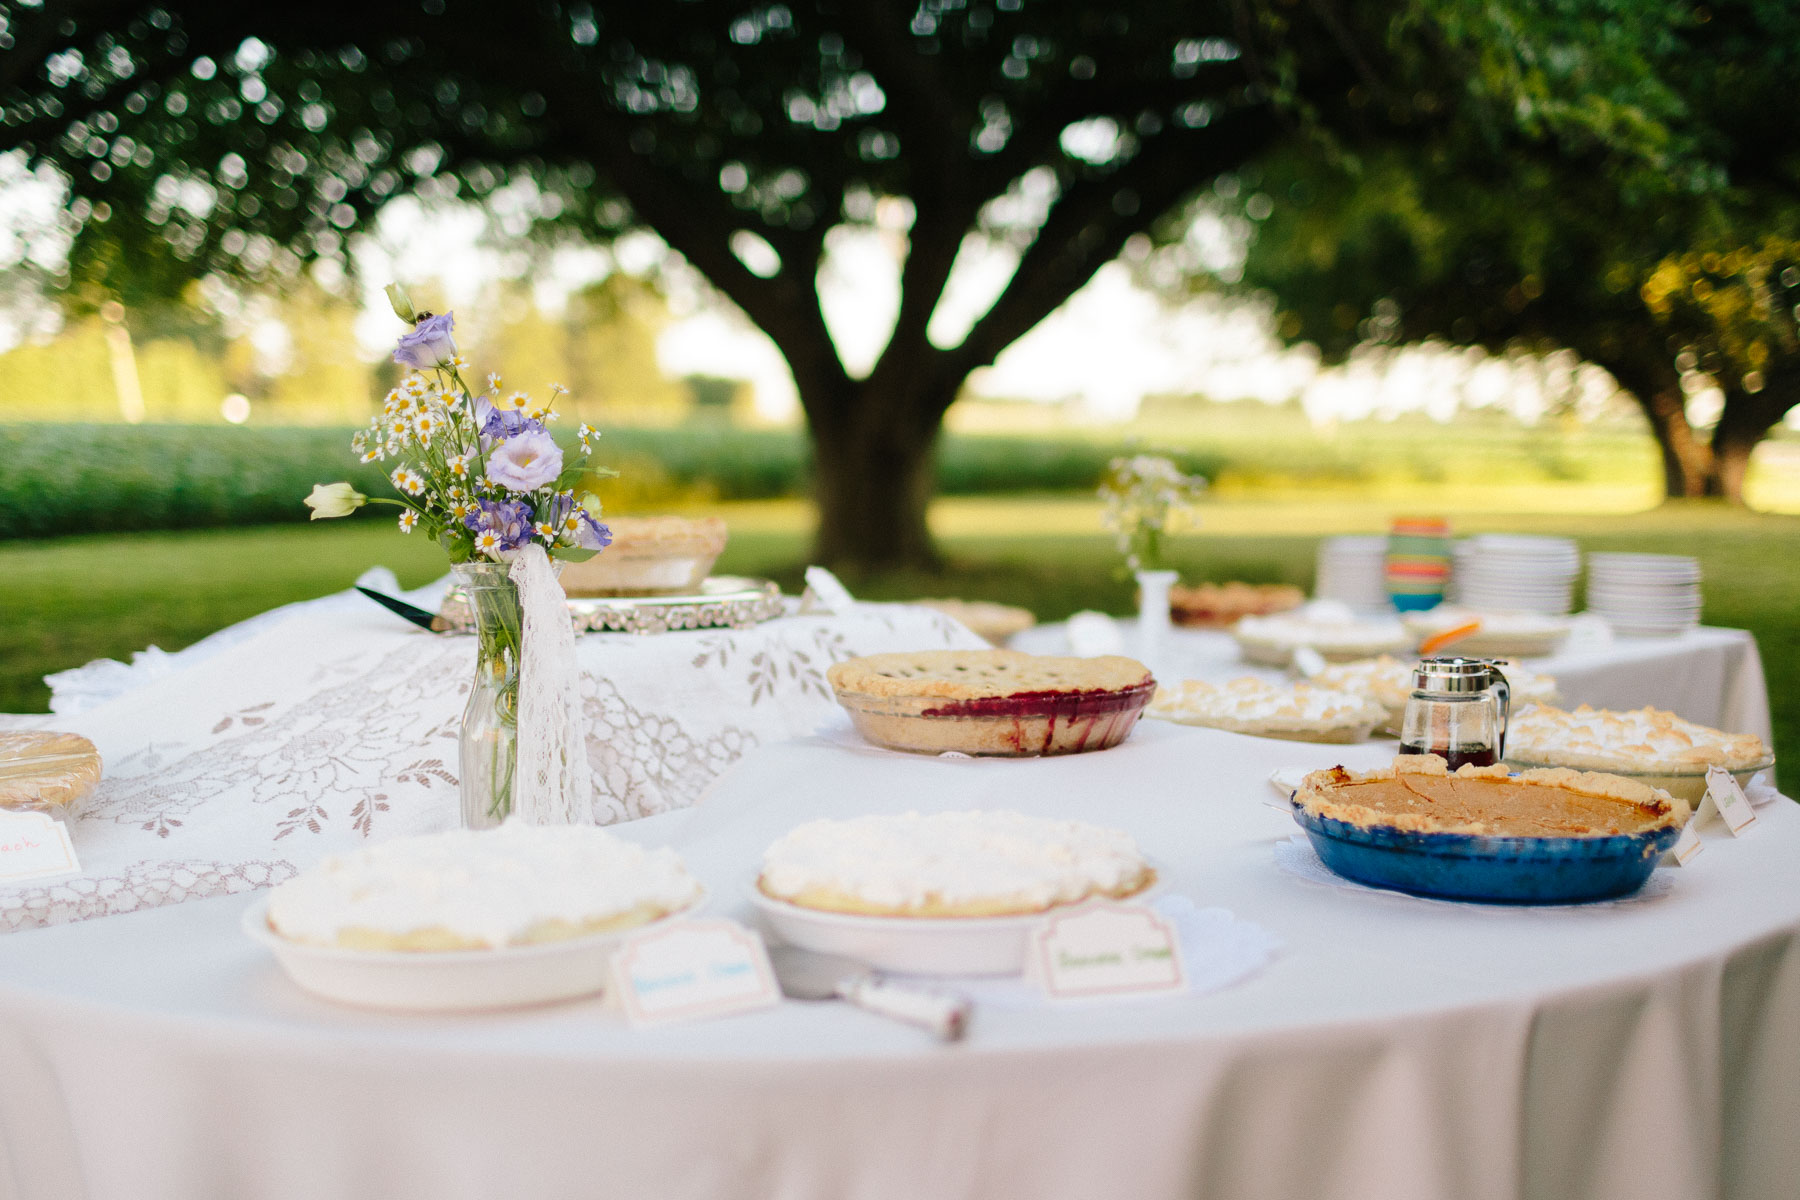 A dessert table full of pies and some violet flowers, outside at a rural farm wedding.